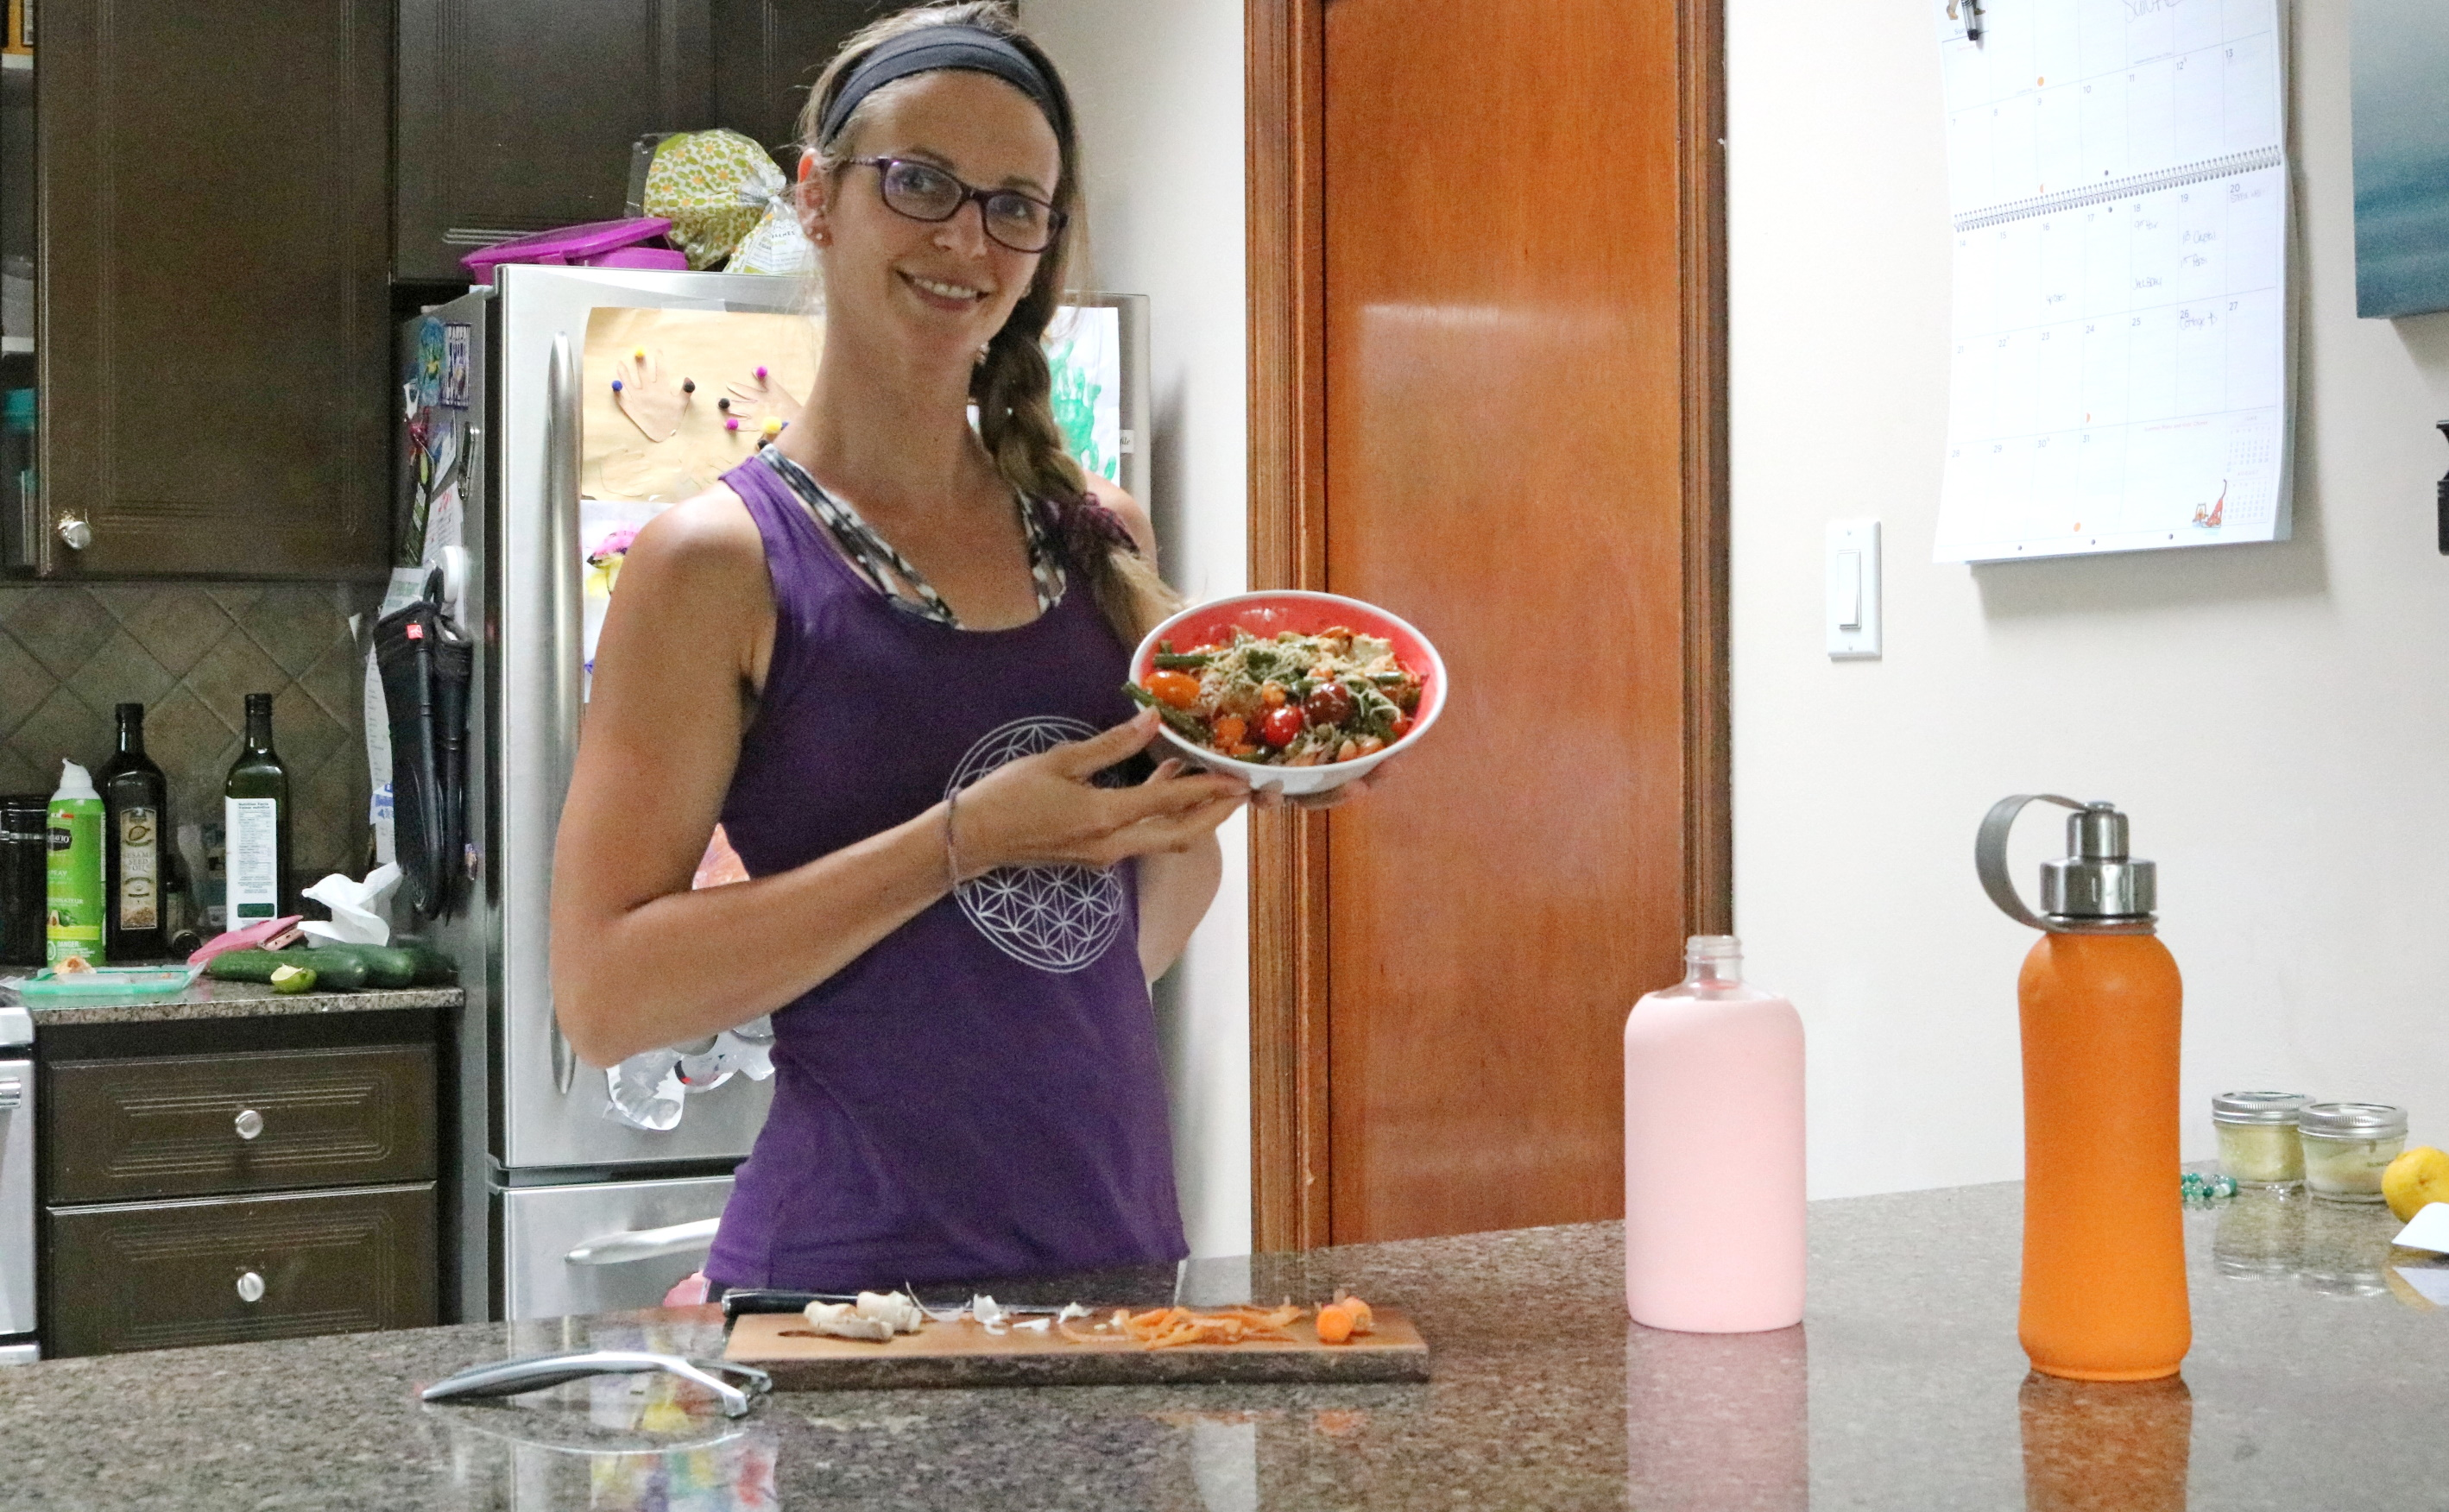 Women in purple shirt standing in kitchen holding a bowl of healthy food